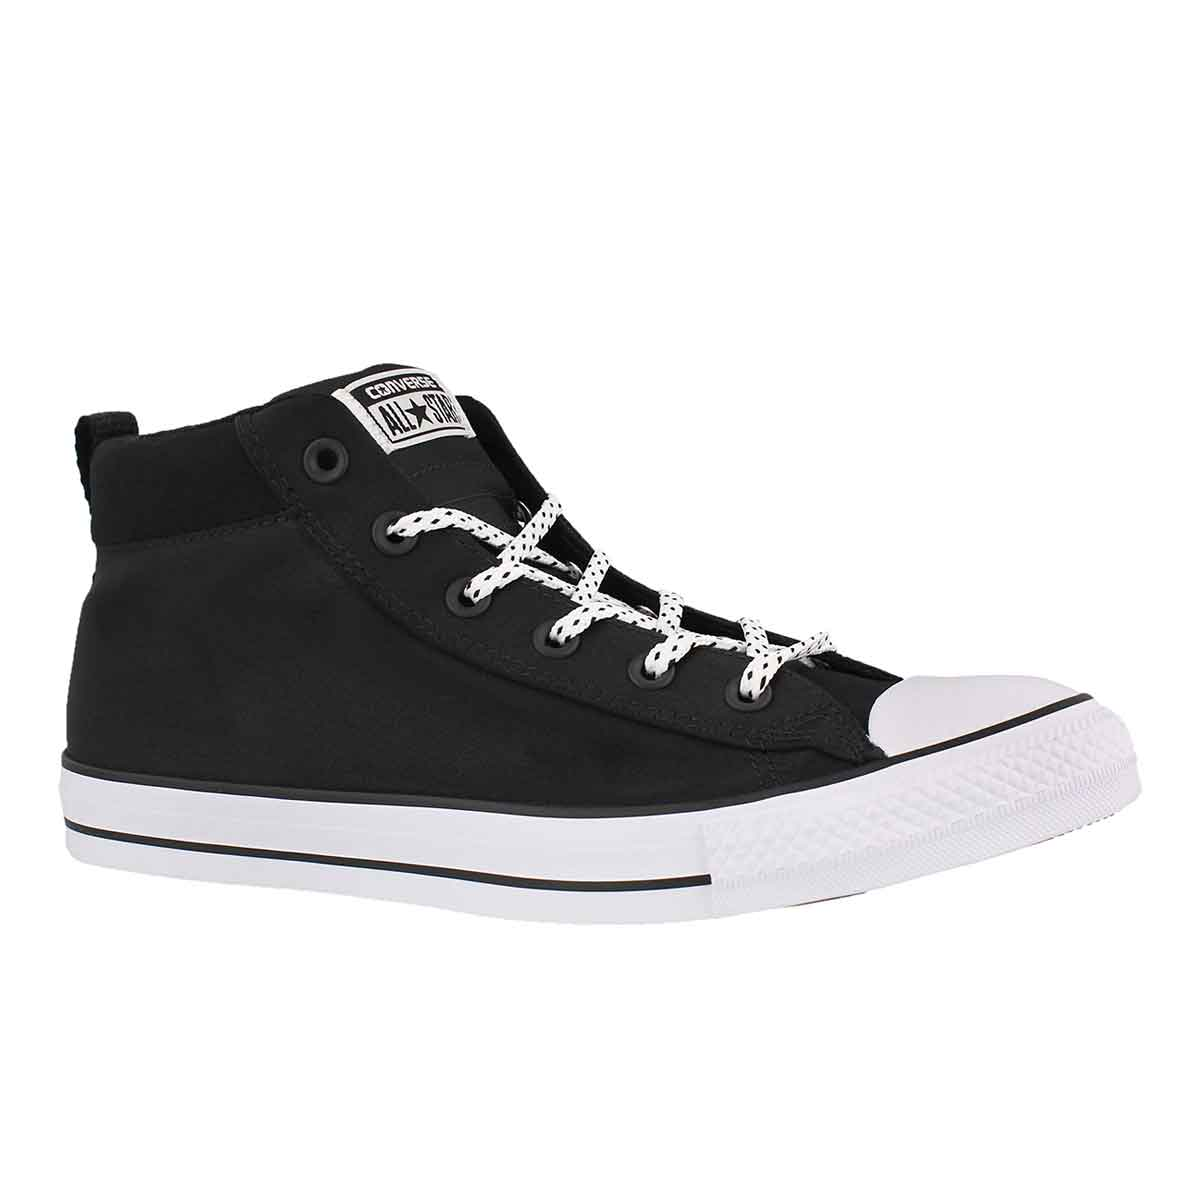 Men's CT ALL STAR STREET MID black sneakers